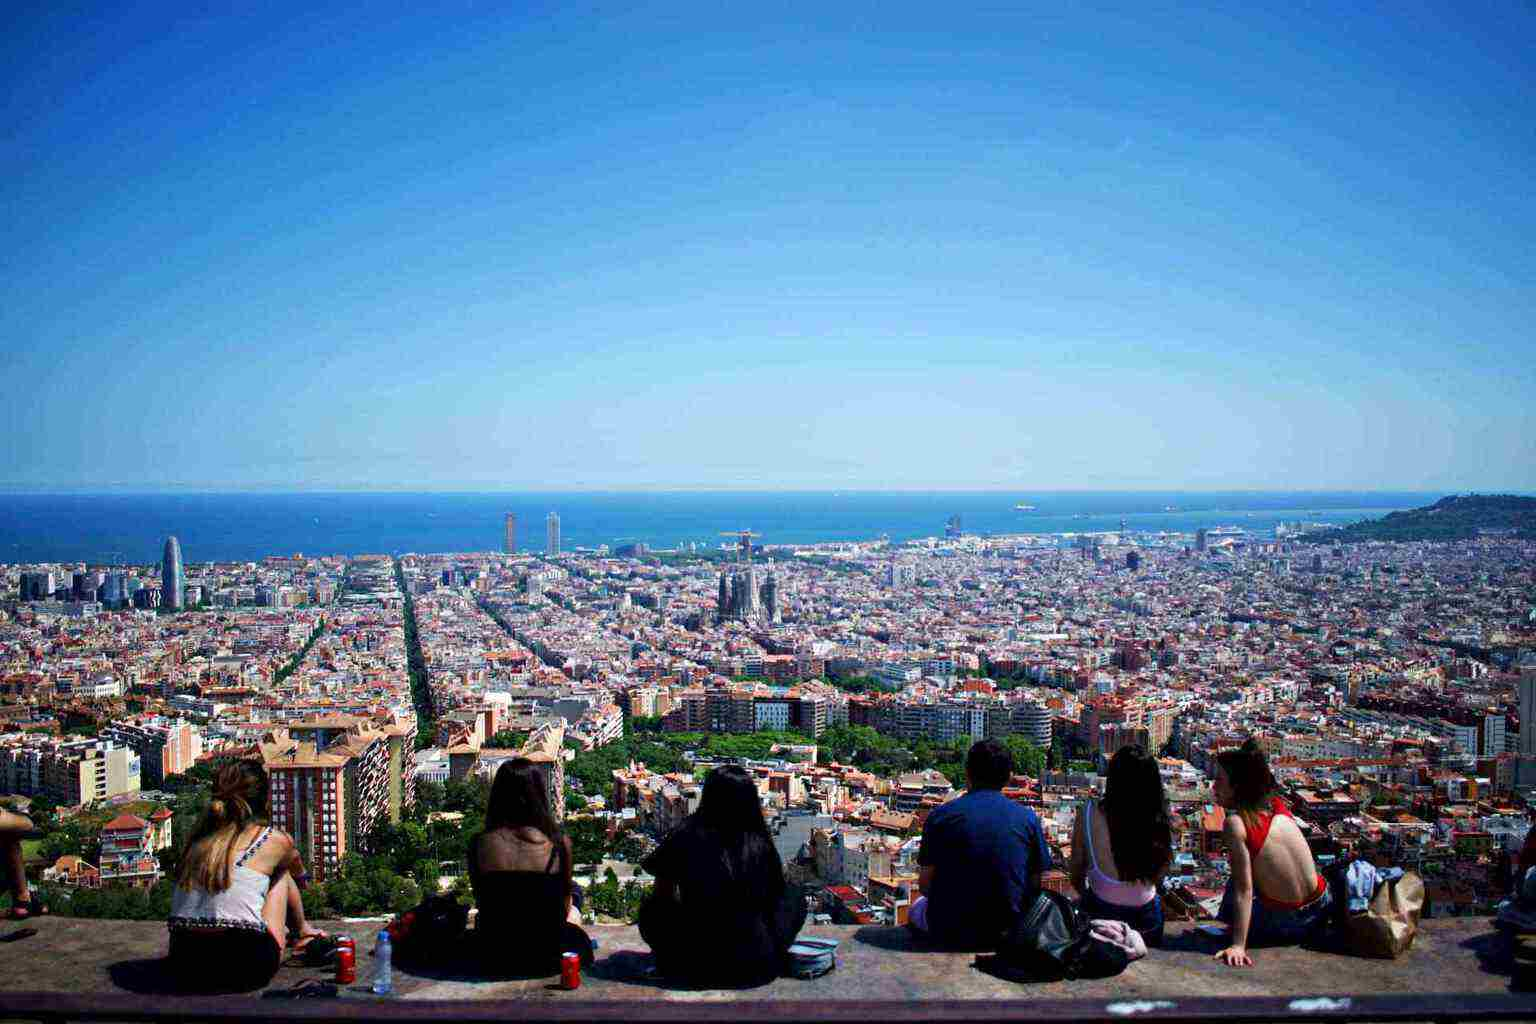 The 10 Famous Places in Barcelona to Visits In 2019